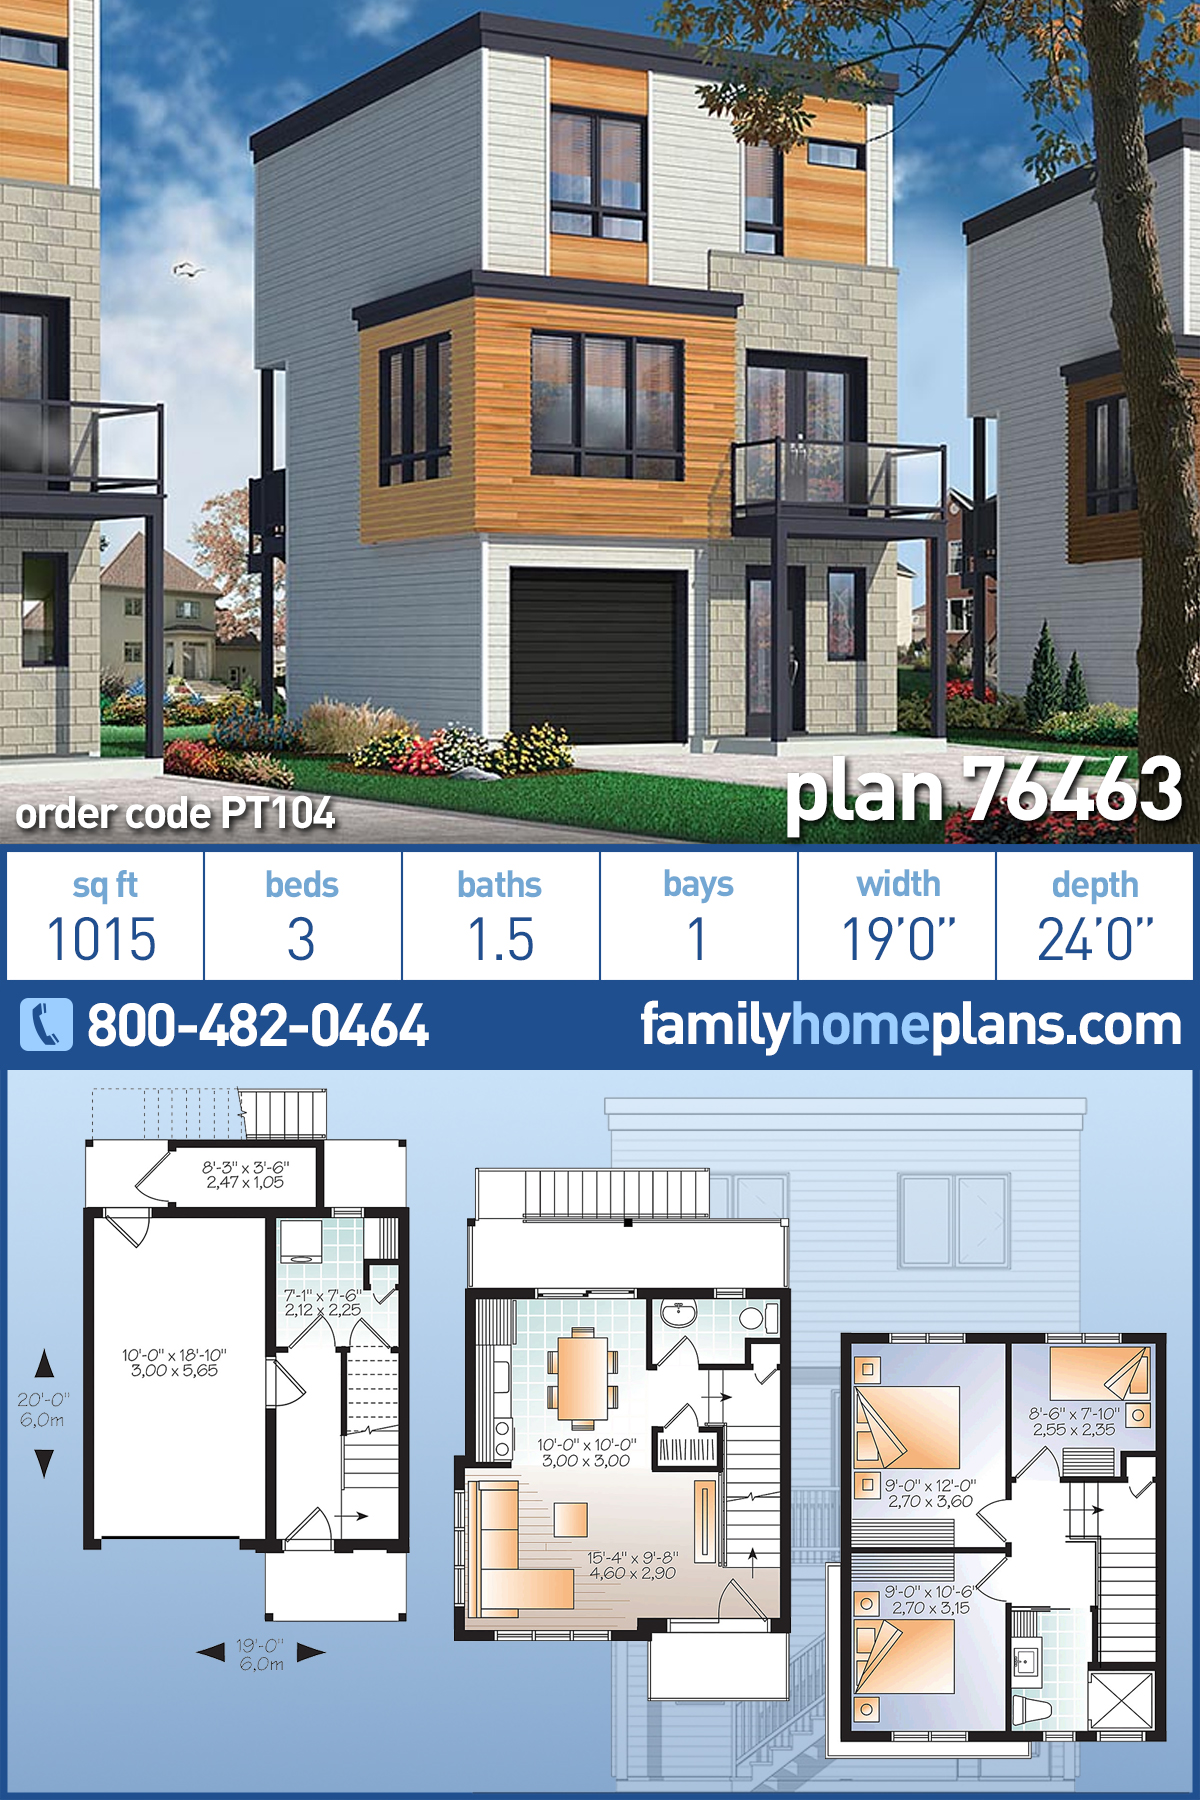 Contemporary, Modern House Plan 76463 with 3 Beds, 2 Baths, 1 Car Garage